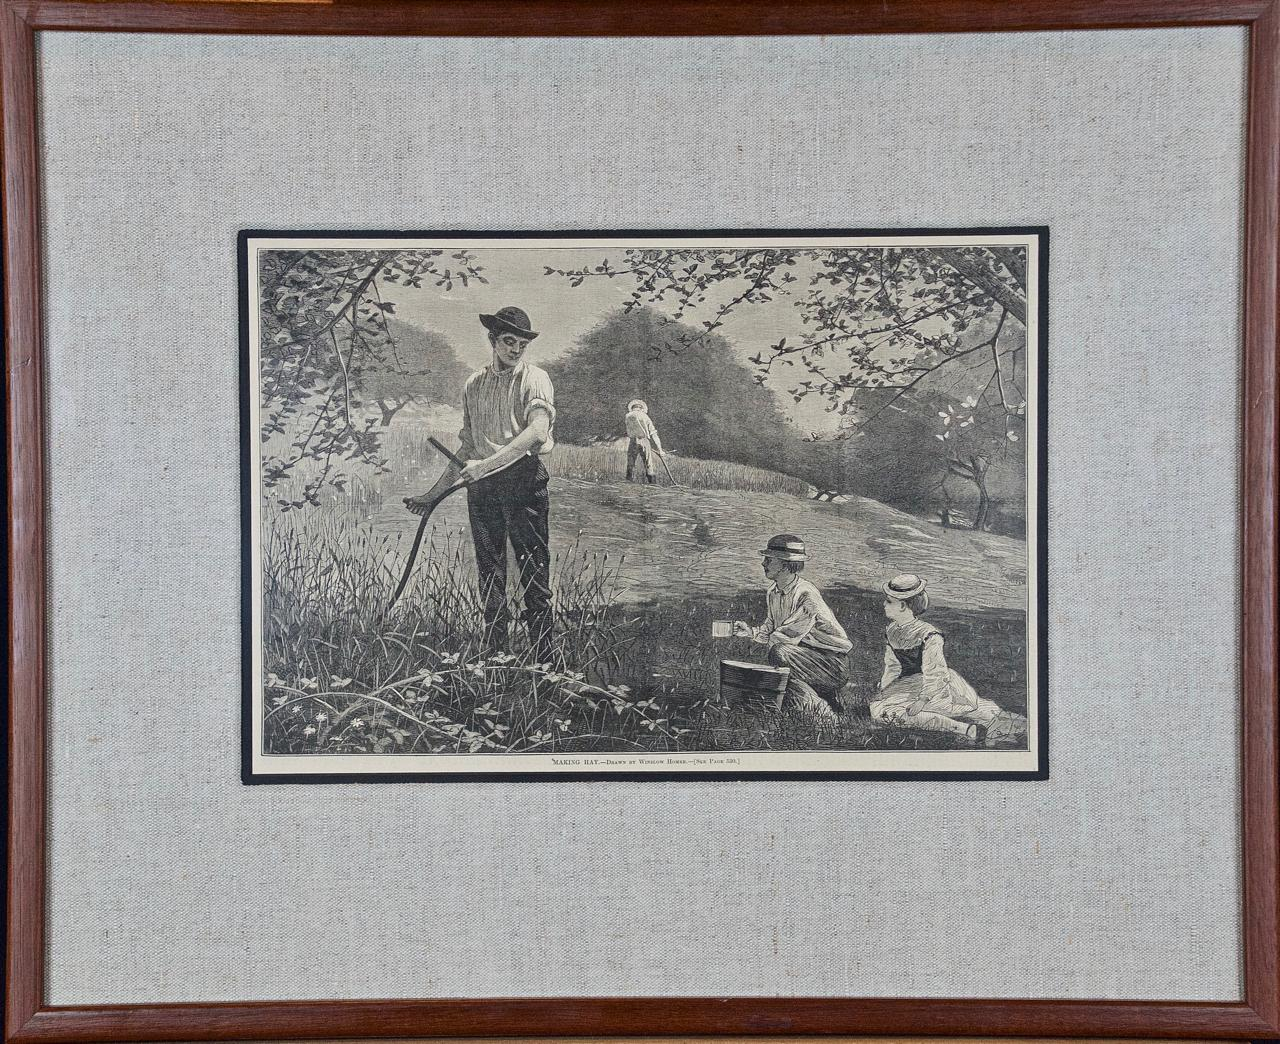 """A Winslow Homer 19th Century Woodcut Engraving """"Making Hay"""""""